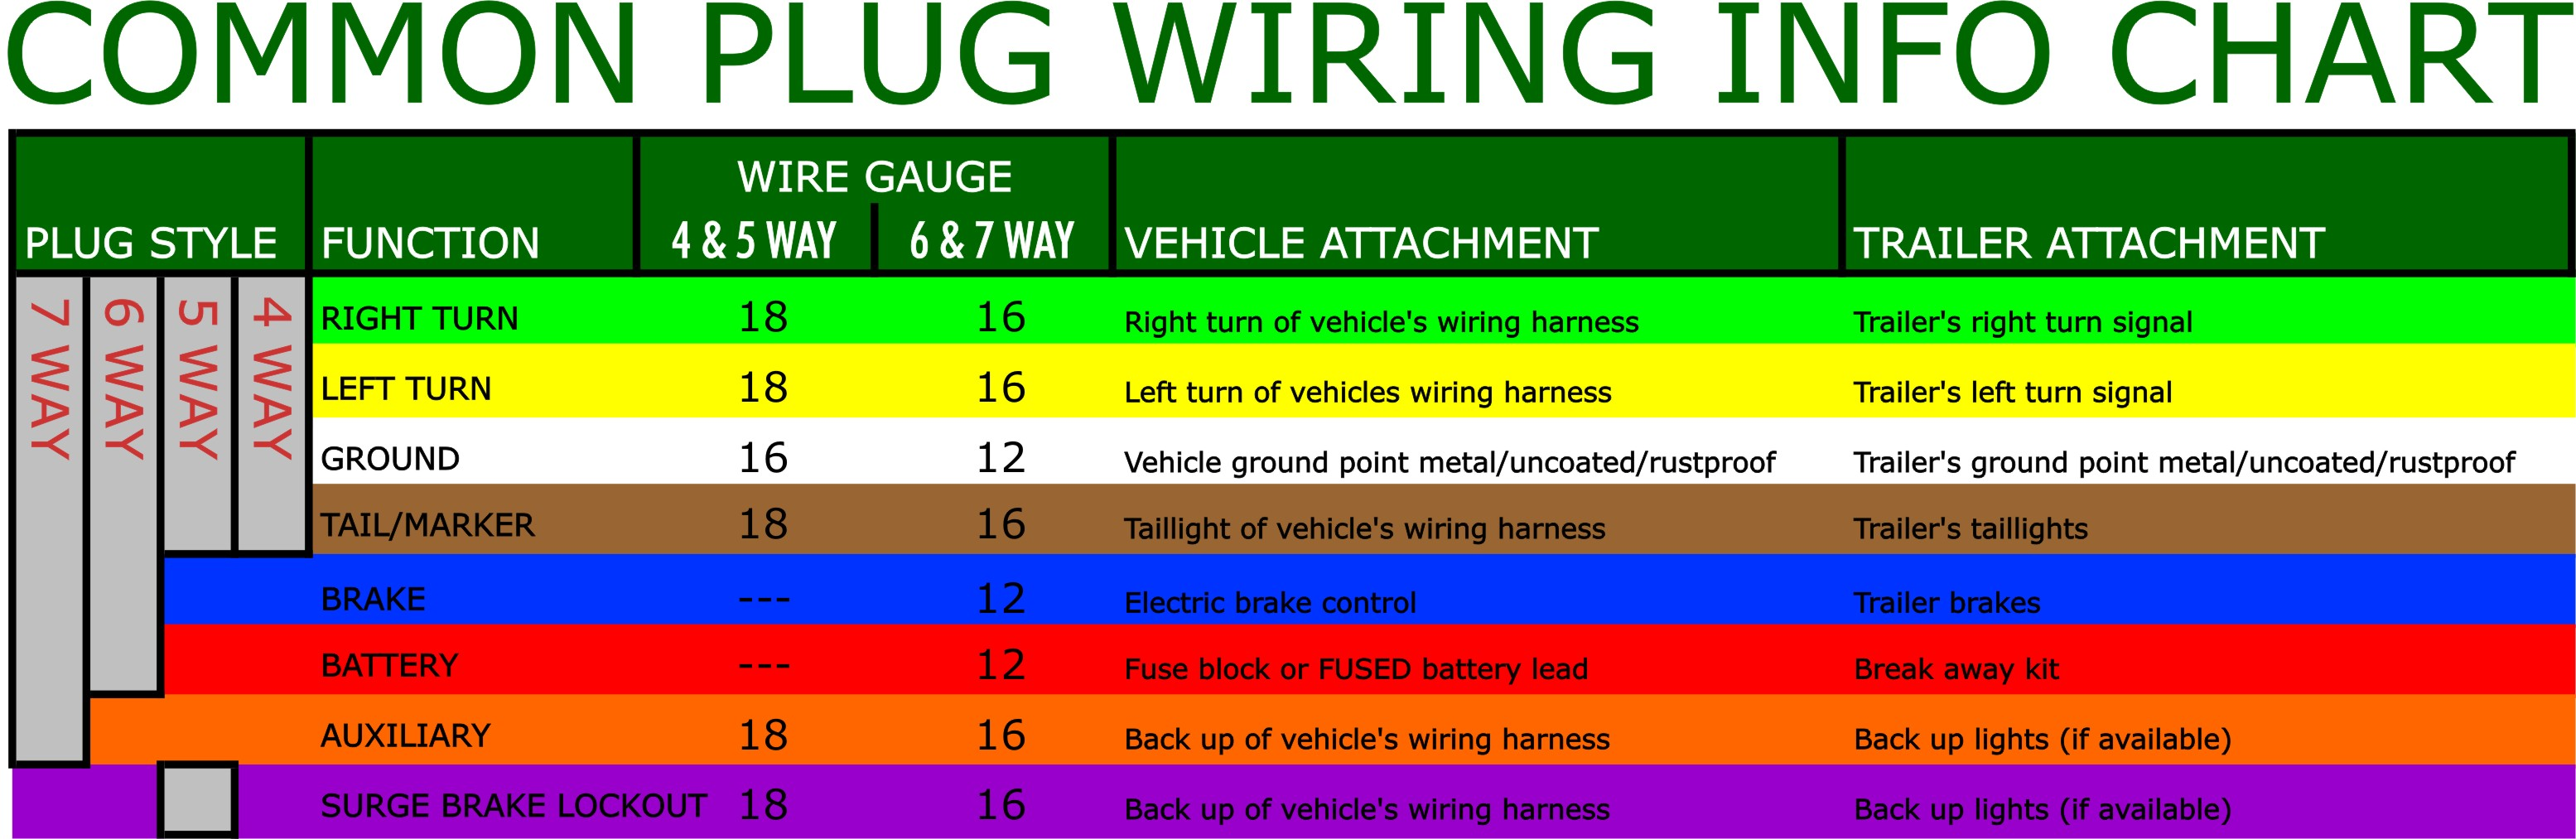 What Are The Most Common Trailer Plugs?  Way Connector Wiring Harness on 2011 chevy van trailer wire harness, 7 way coil, 7 way valve, 7 way relay harness, 7 way cable, 7 way radio, 7 way switch, 7 way connector,